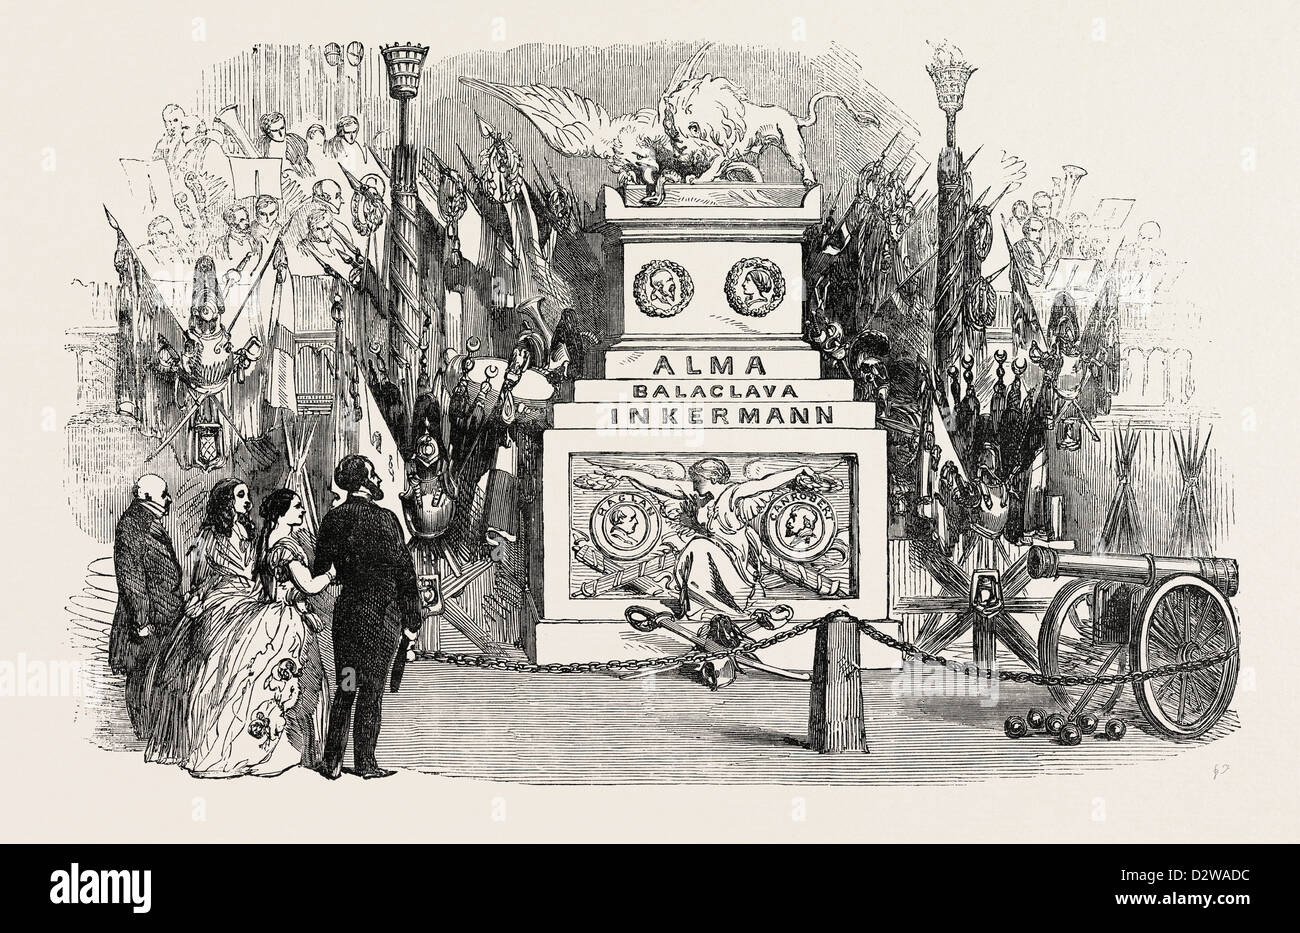 GRAND MILITARY TROPHY AT THE CONCERTS FOR THE BENEFIT OF THE PATRIOTIC FUND IN THE TOWN-HALL BIRMINGHAM 1854 - Stock Image